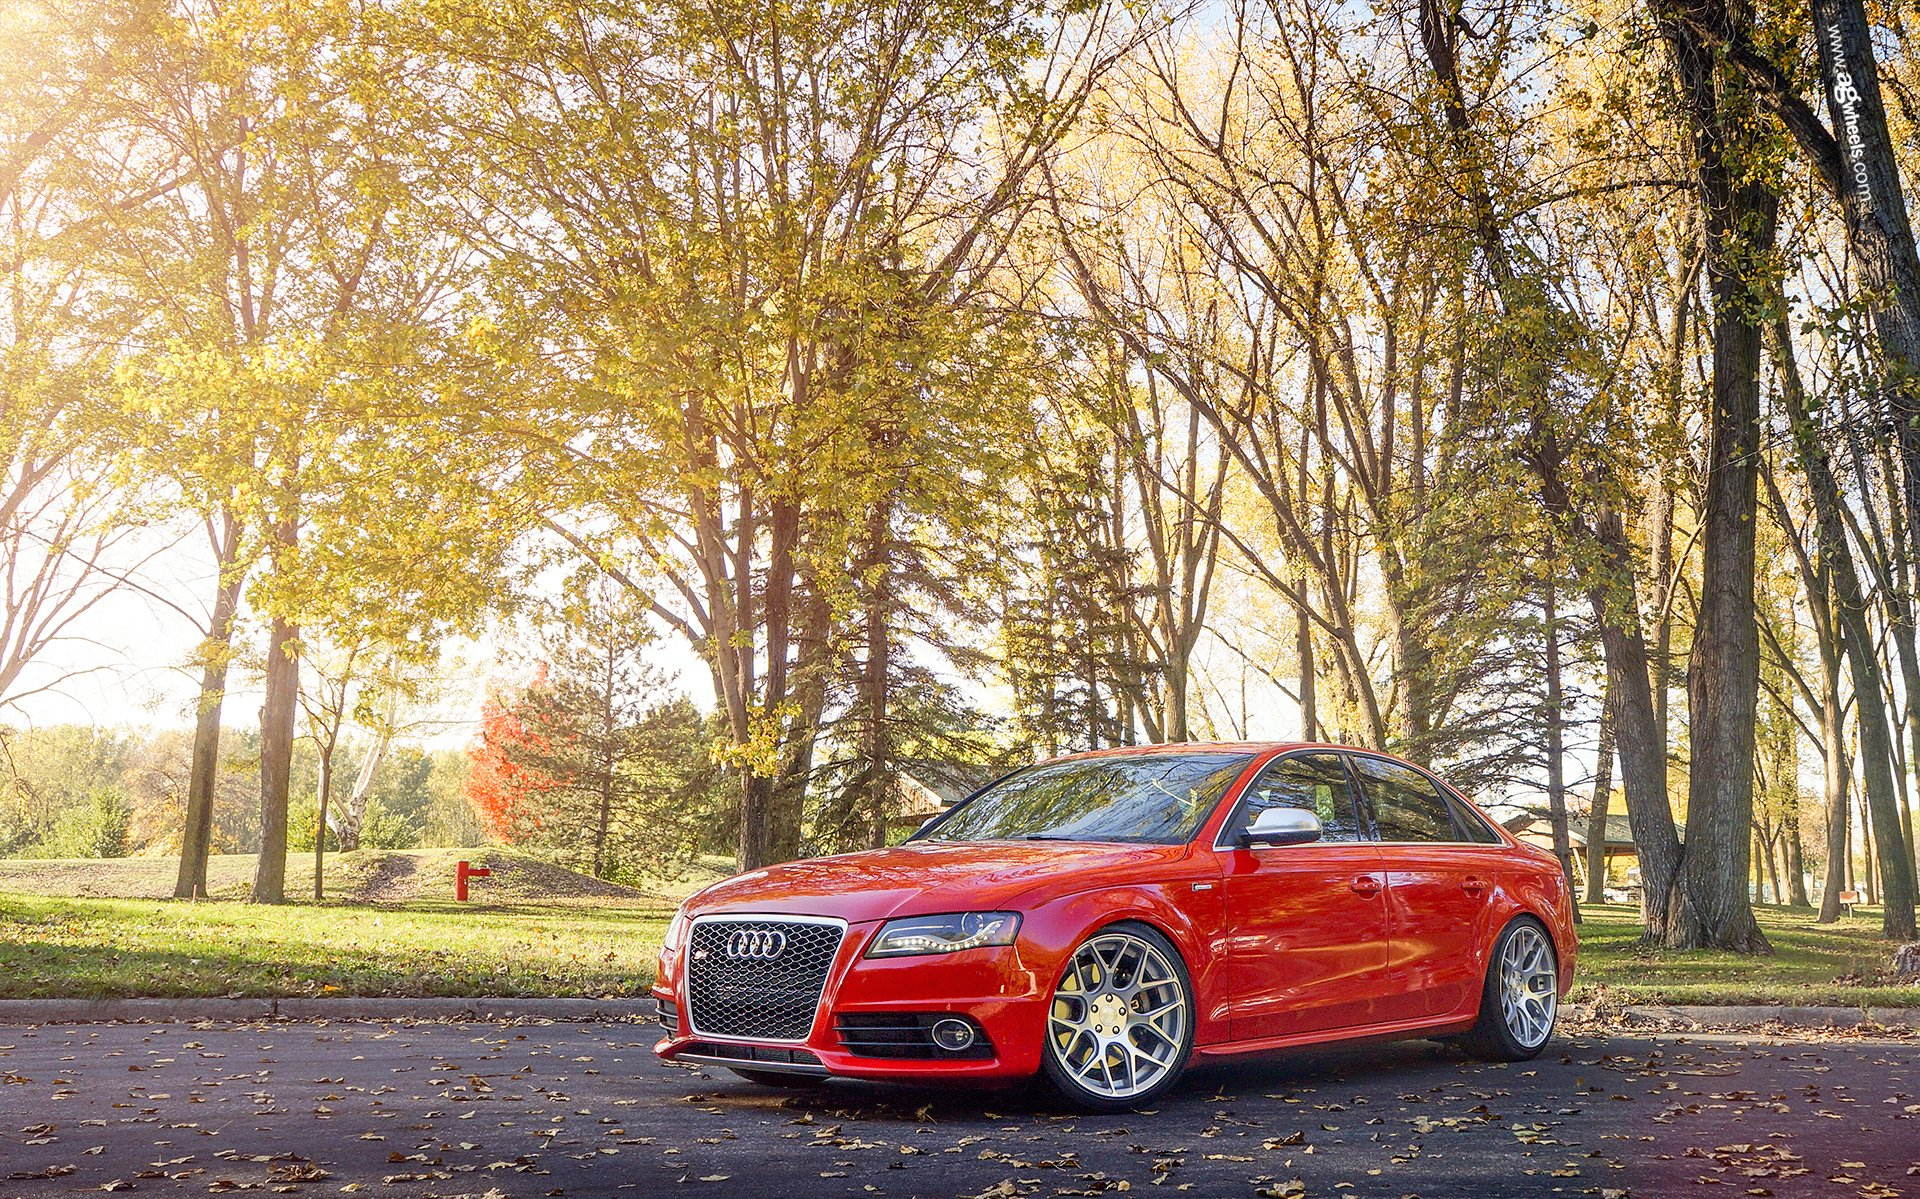 Vehicles - Audi S4  Audi Luxury Car Car Vehicle Red Car Wallpaper